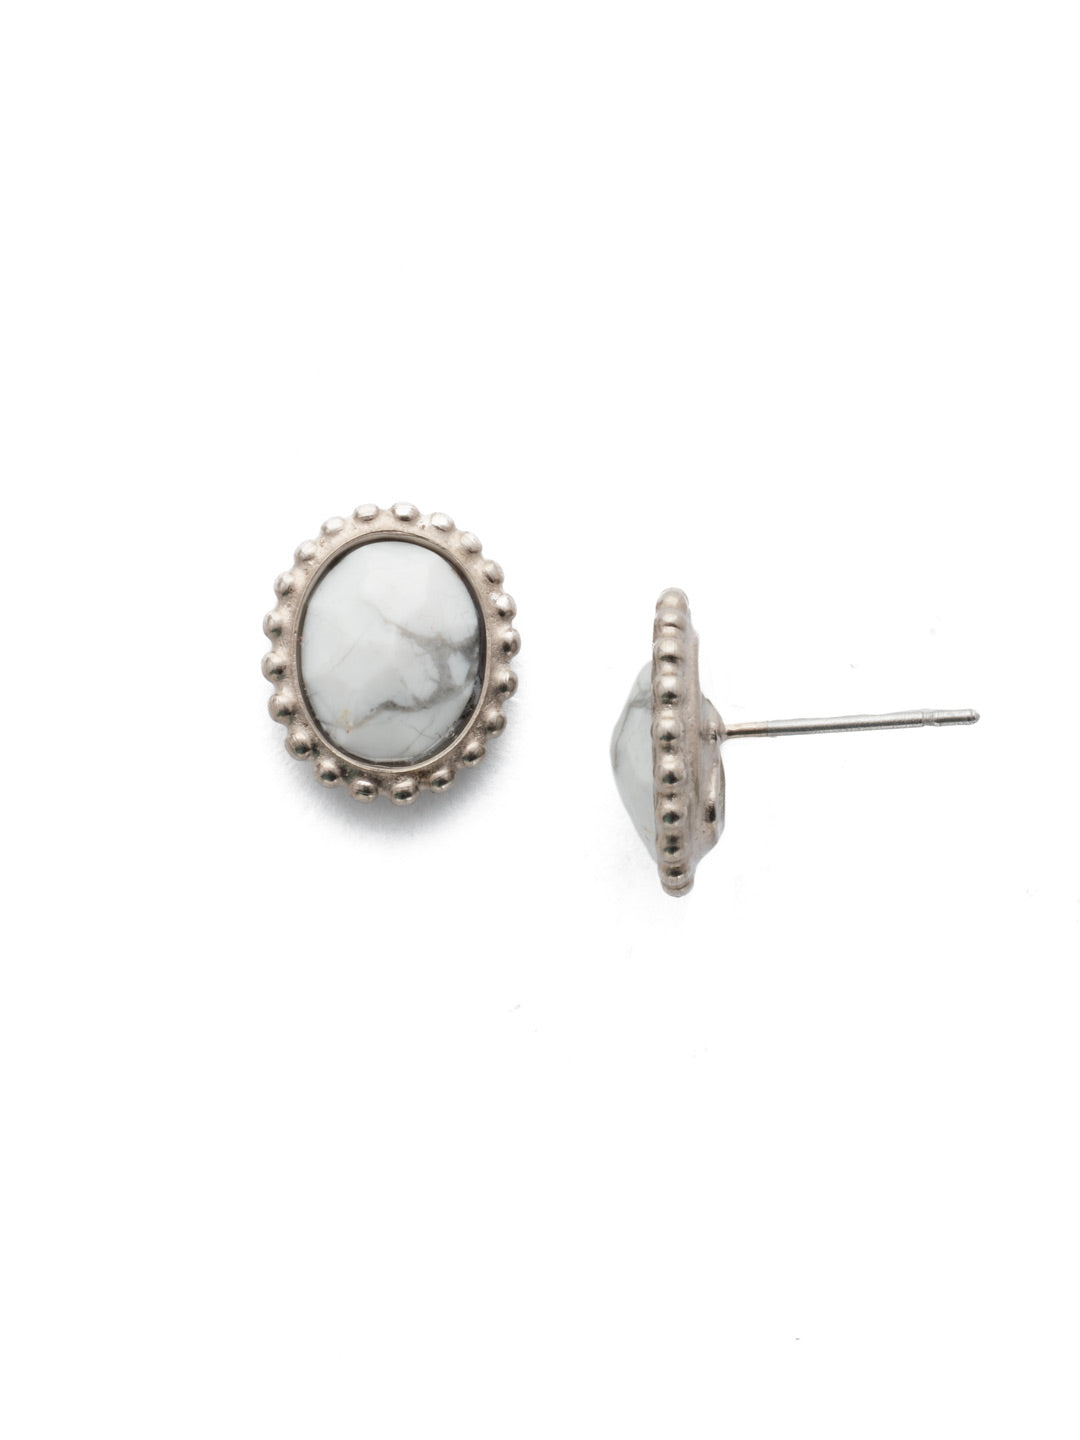 Oval-Cut Solitaire Stud Earrings - EDQ10ASGLC